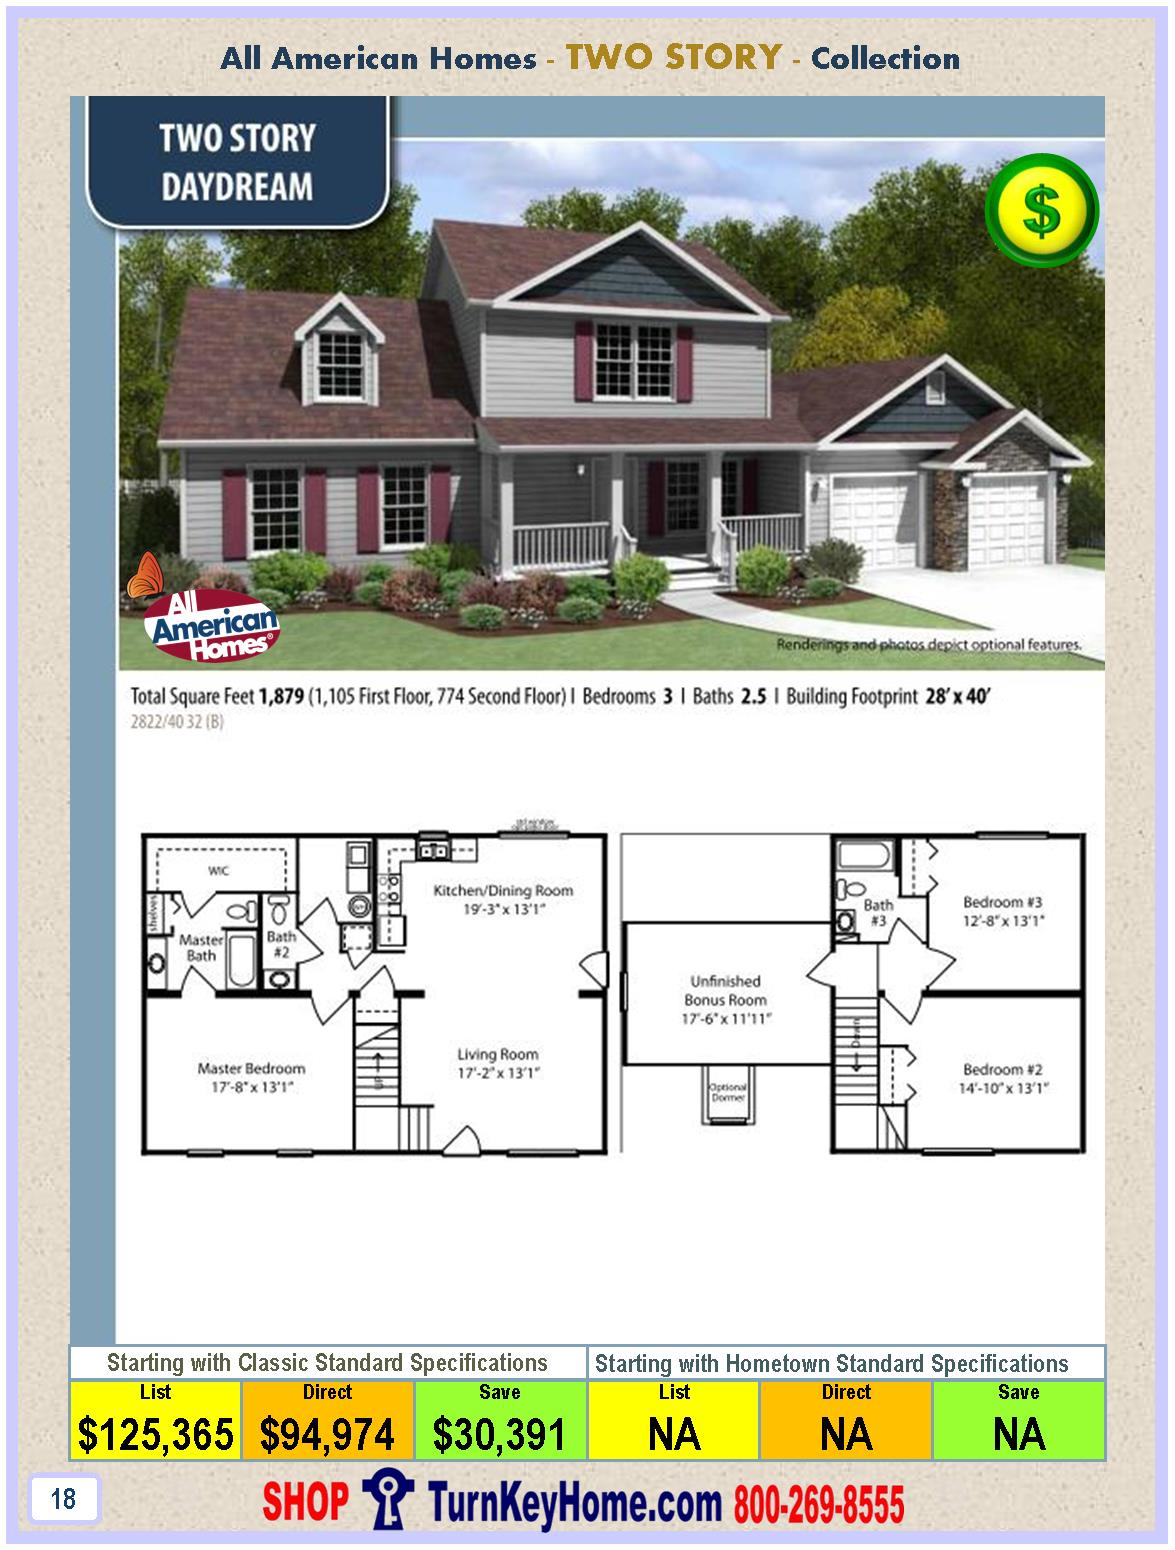 Daydream all american modular home two story collection for 2 story house price